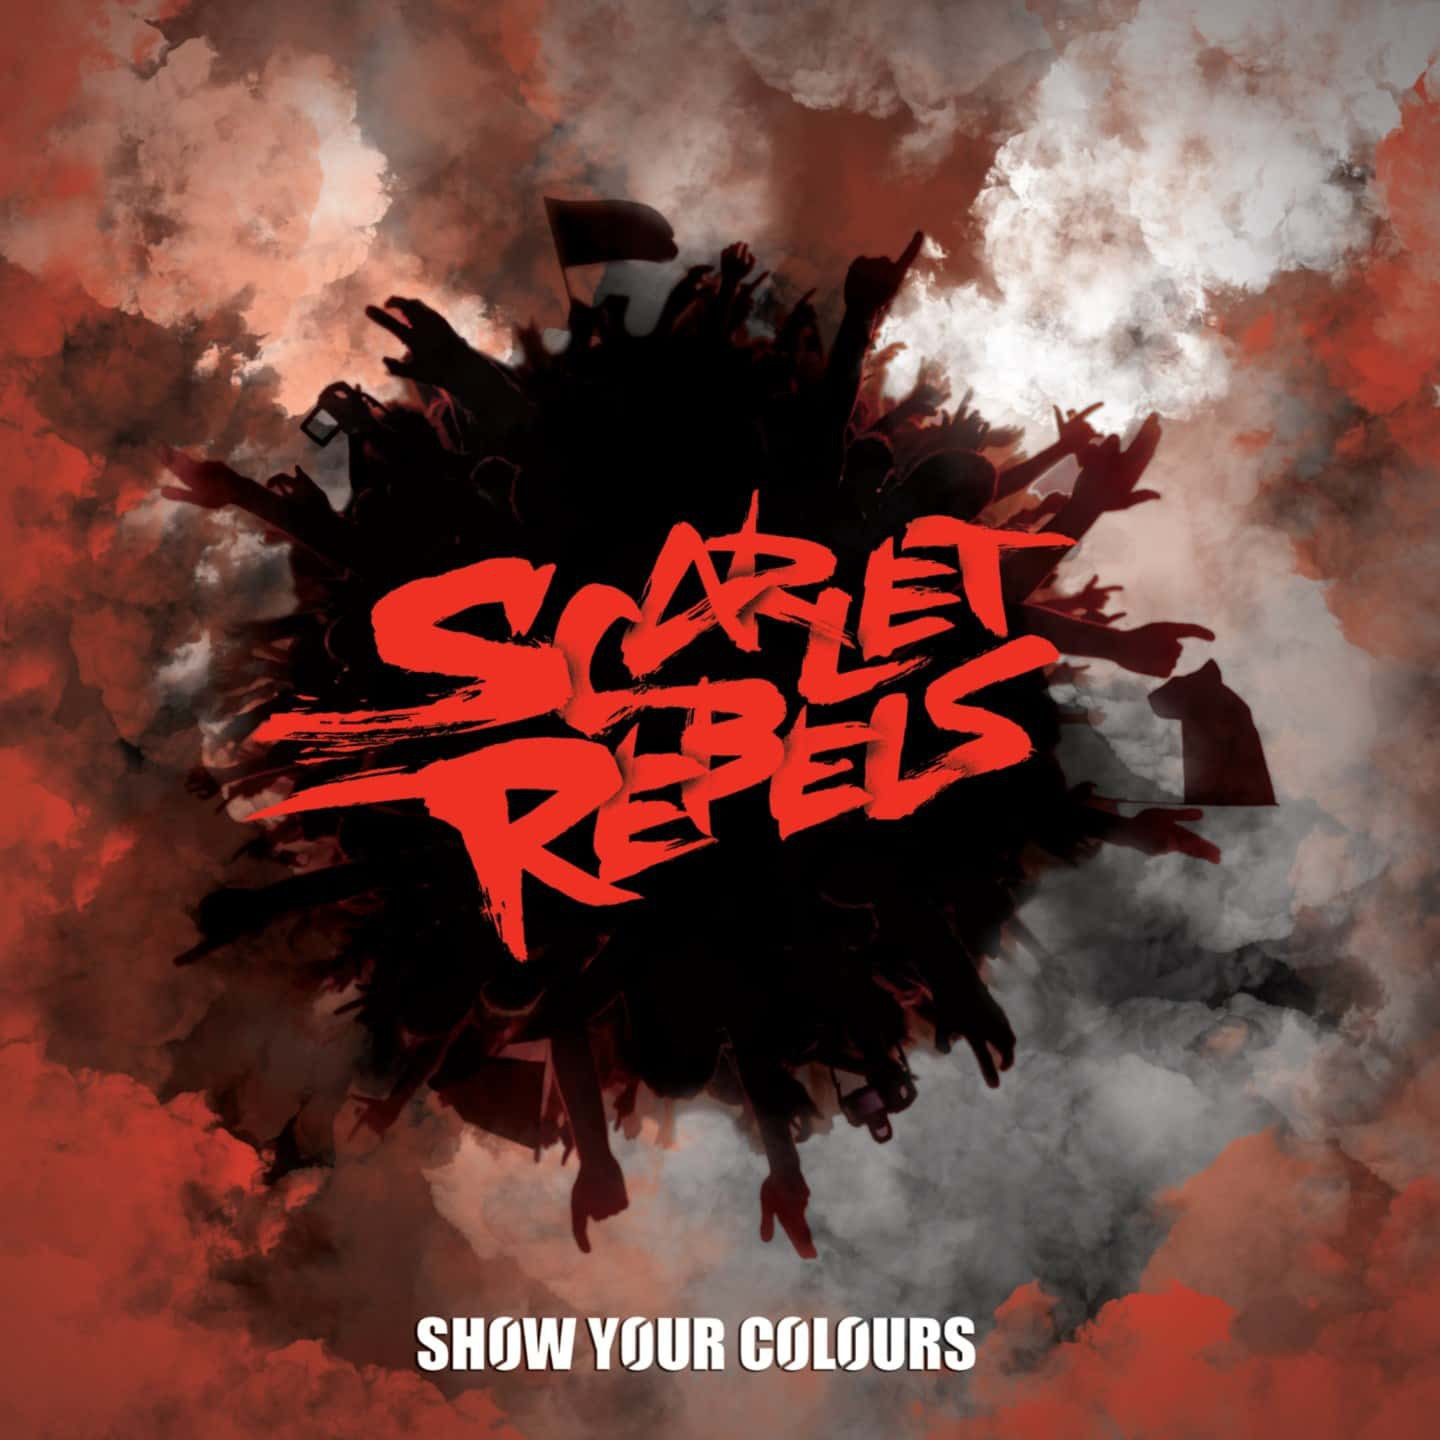 min Scarlet Rebels Show Your Colours coverart